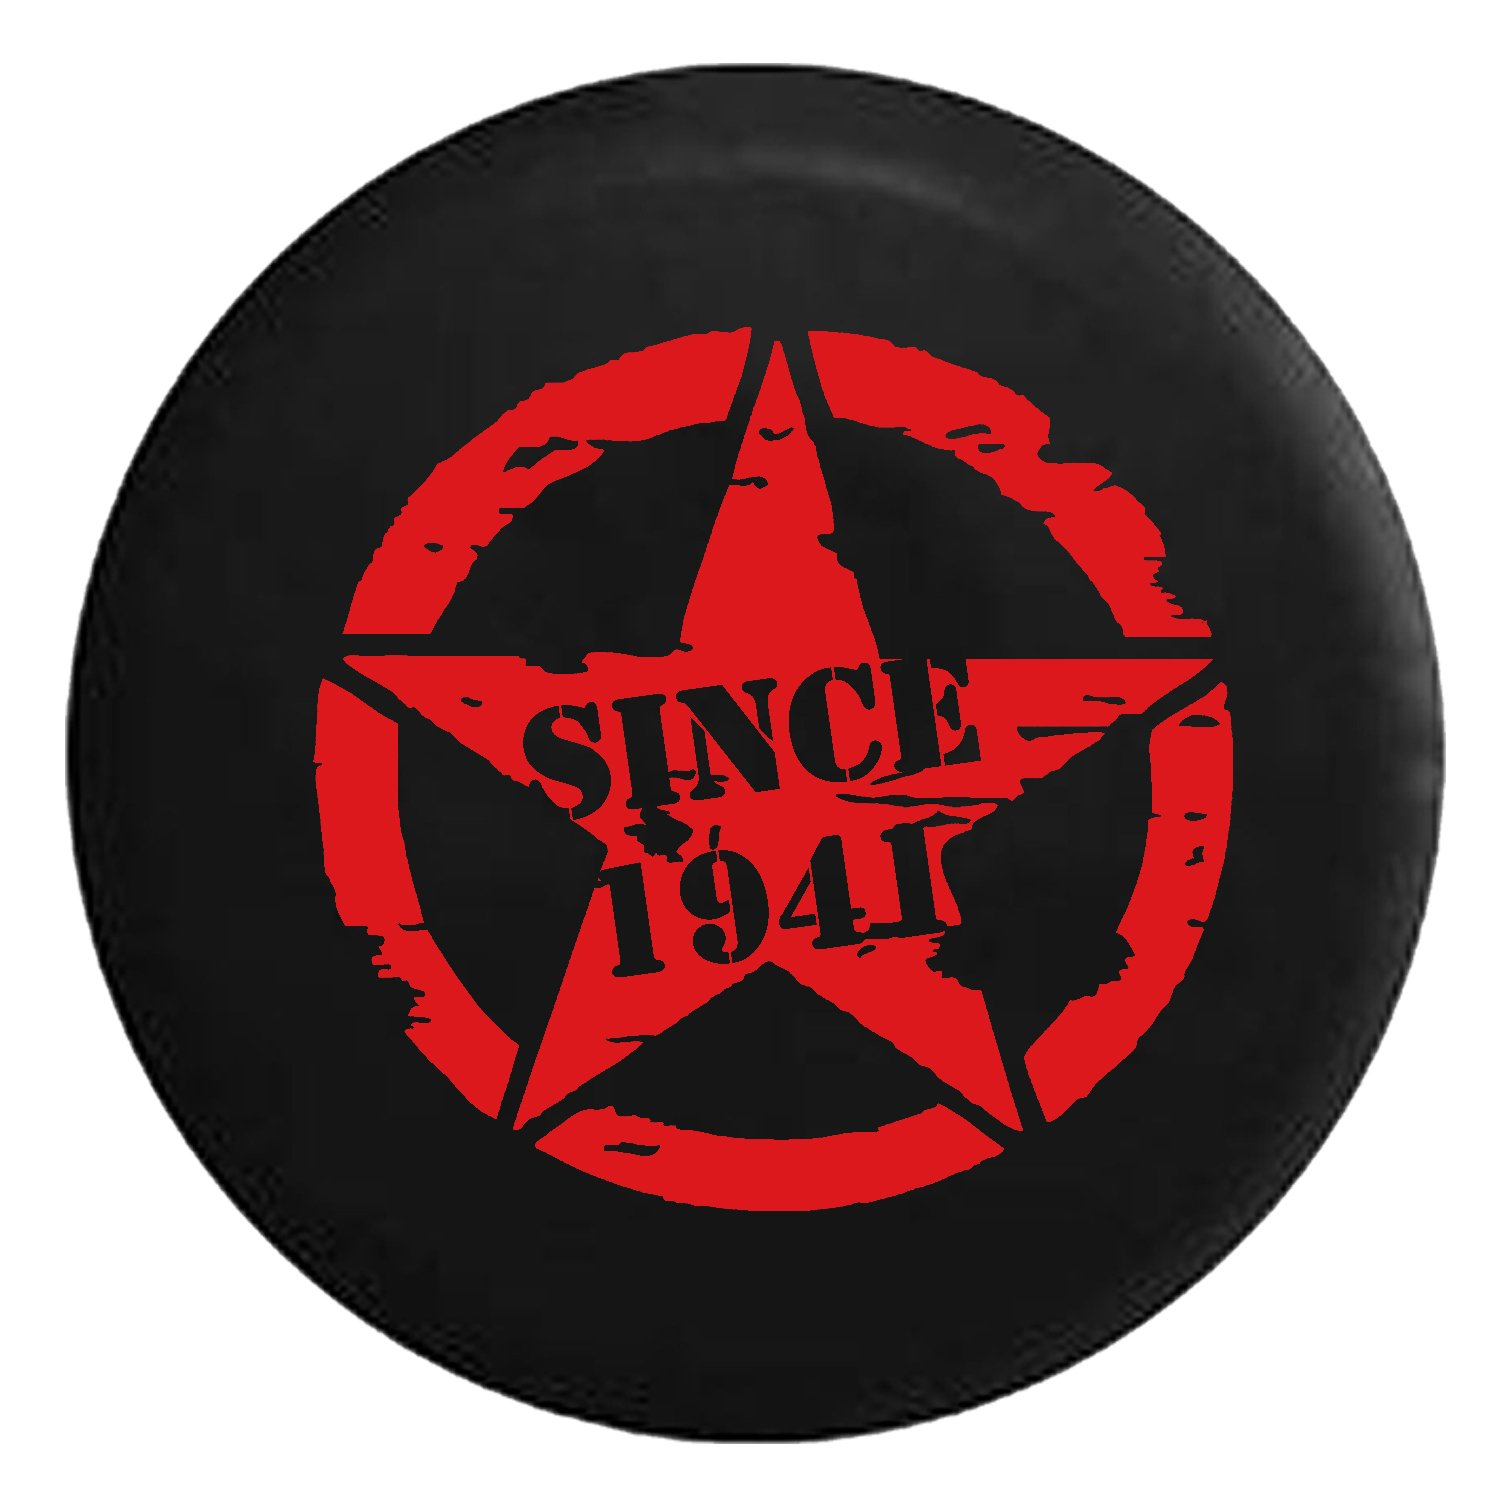 Since 1941 Oscar Mike Military Tattered Star Spare Jeep Wrangler Camper SUV Tire Cover Gray Ink 33 in